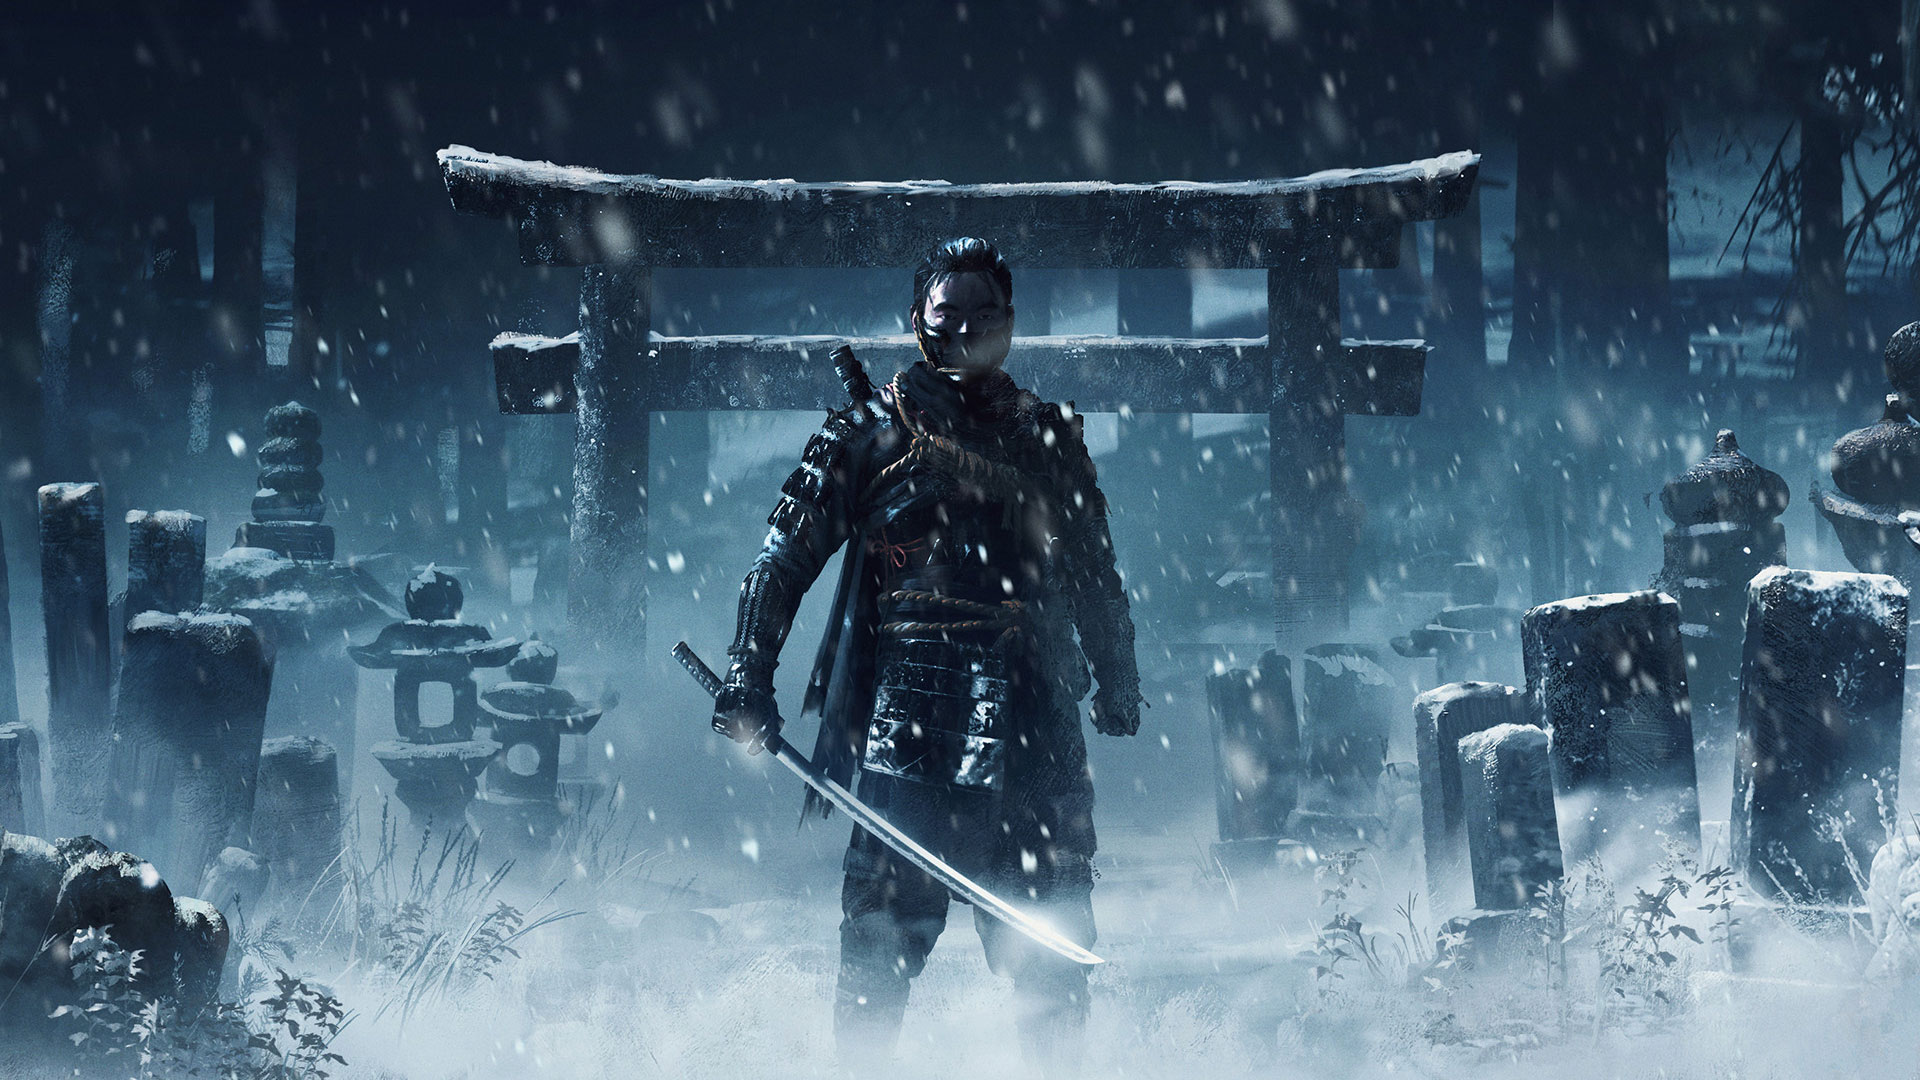 Ghost of Tsushima E3 2018 Hands-Off Preview: Mud, Blood and Tempered Steel